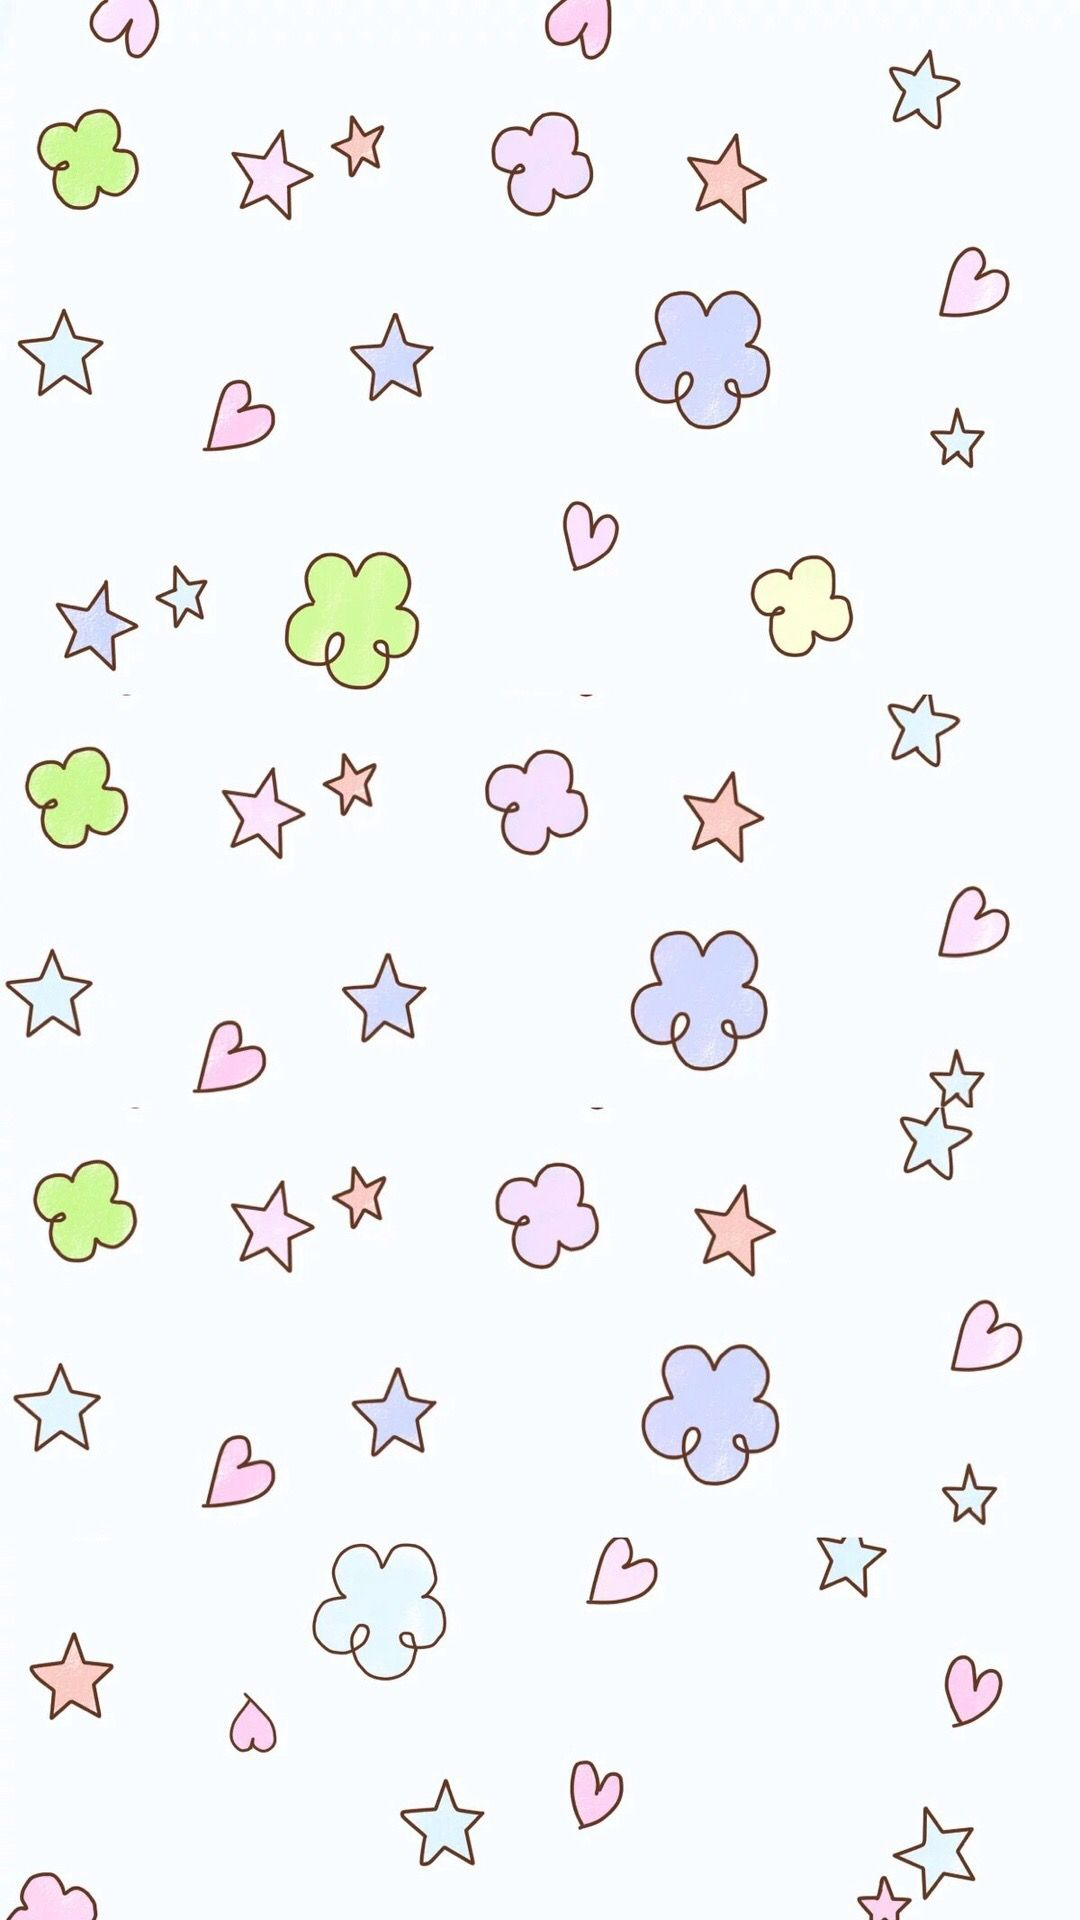 Pin by Stacia on More backgrounds 2 Kawaii wallpaper